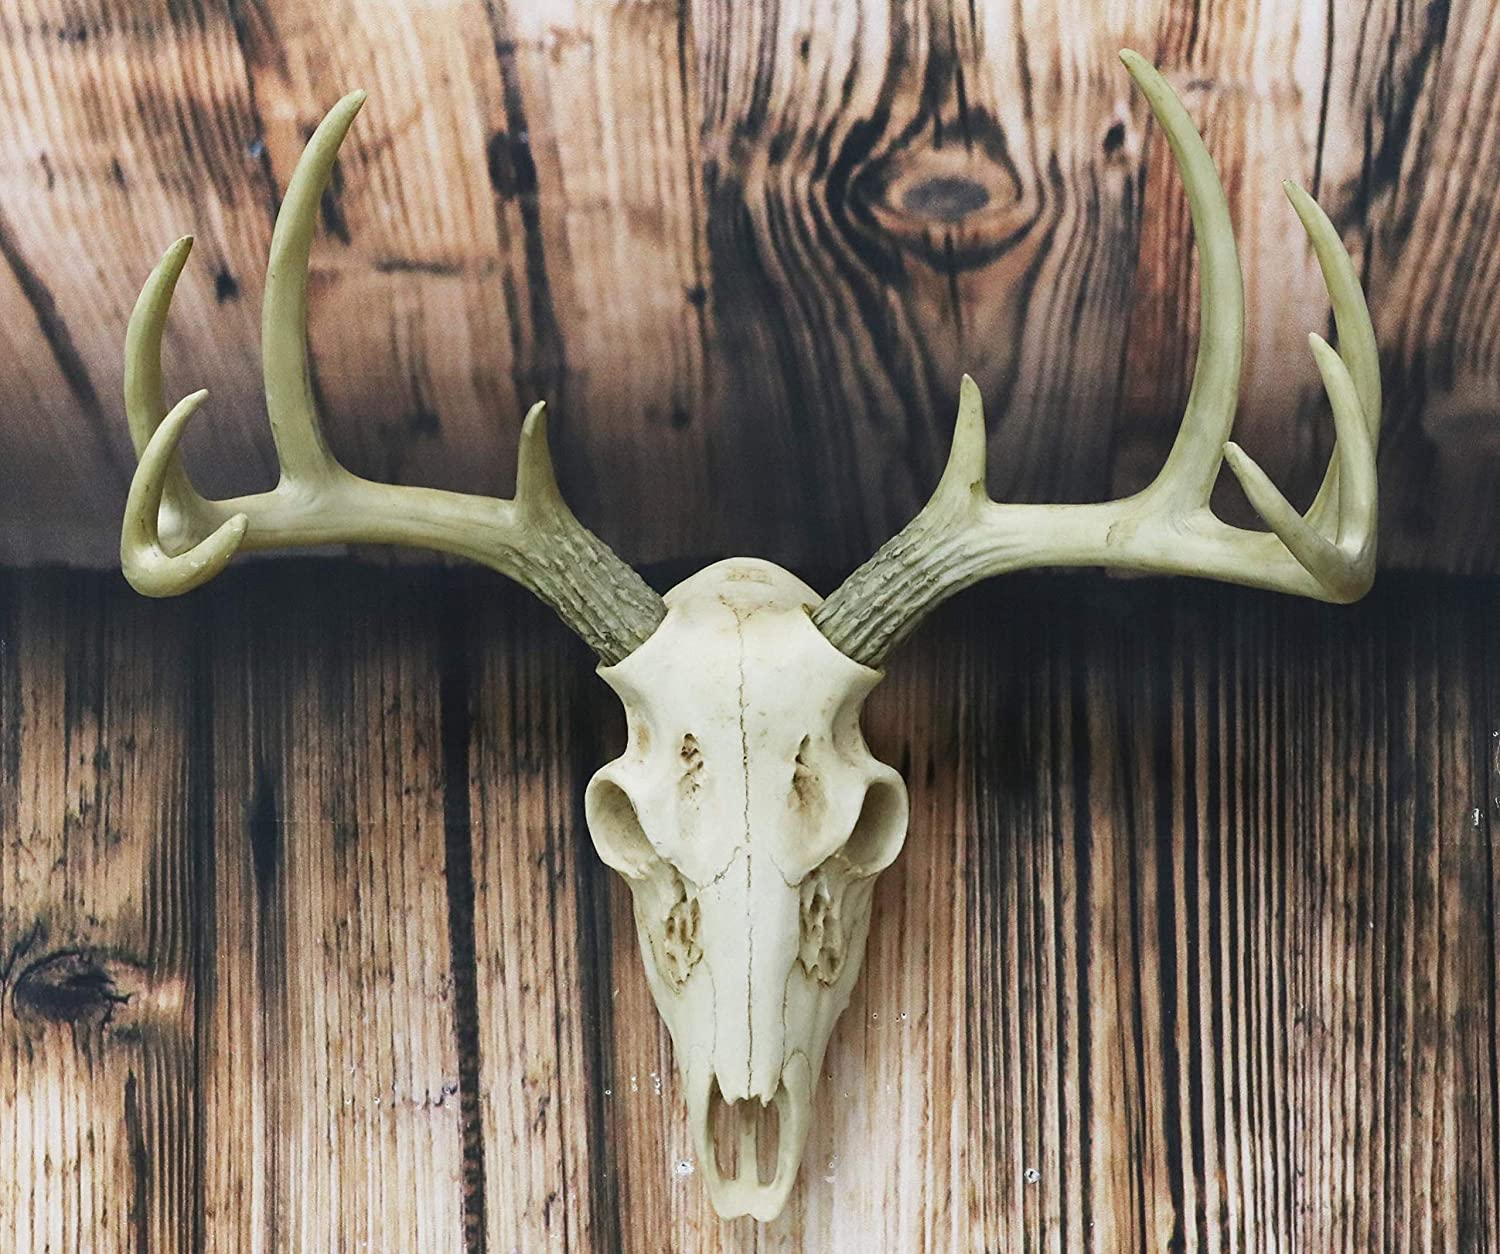 "Ebros Gift Rustic Hunter Deer 10 Point Buck Skull Trophy Antlers Wall Mounted Plaque Trophy Decor Figurine 14.25"" Long Hunter's Antler Rack Theme Deers Bucks Hunting Skulls Trophies Hanging Sculptures"